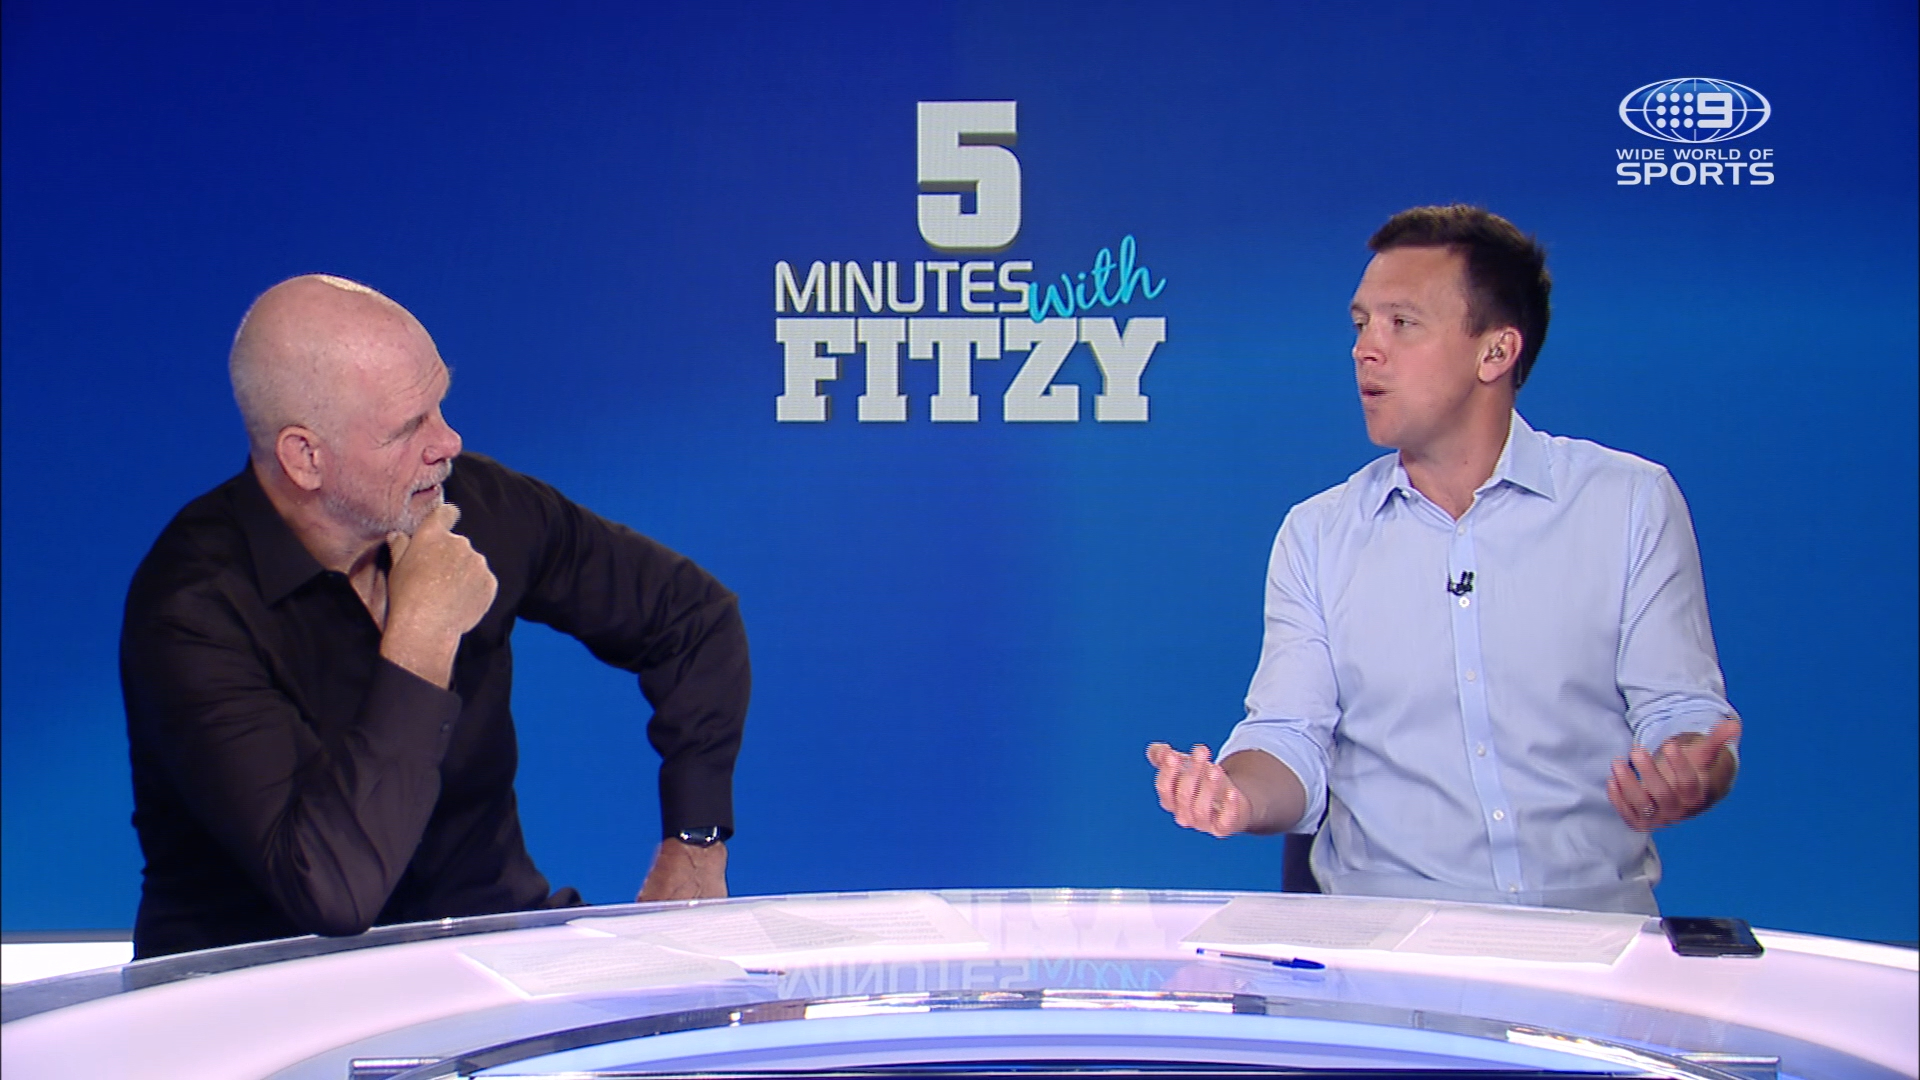 NZ Rugby needs us as much as we need them: 5 Mins with Fitzy